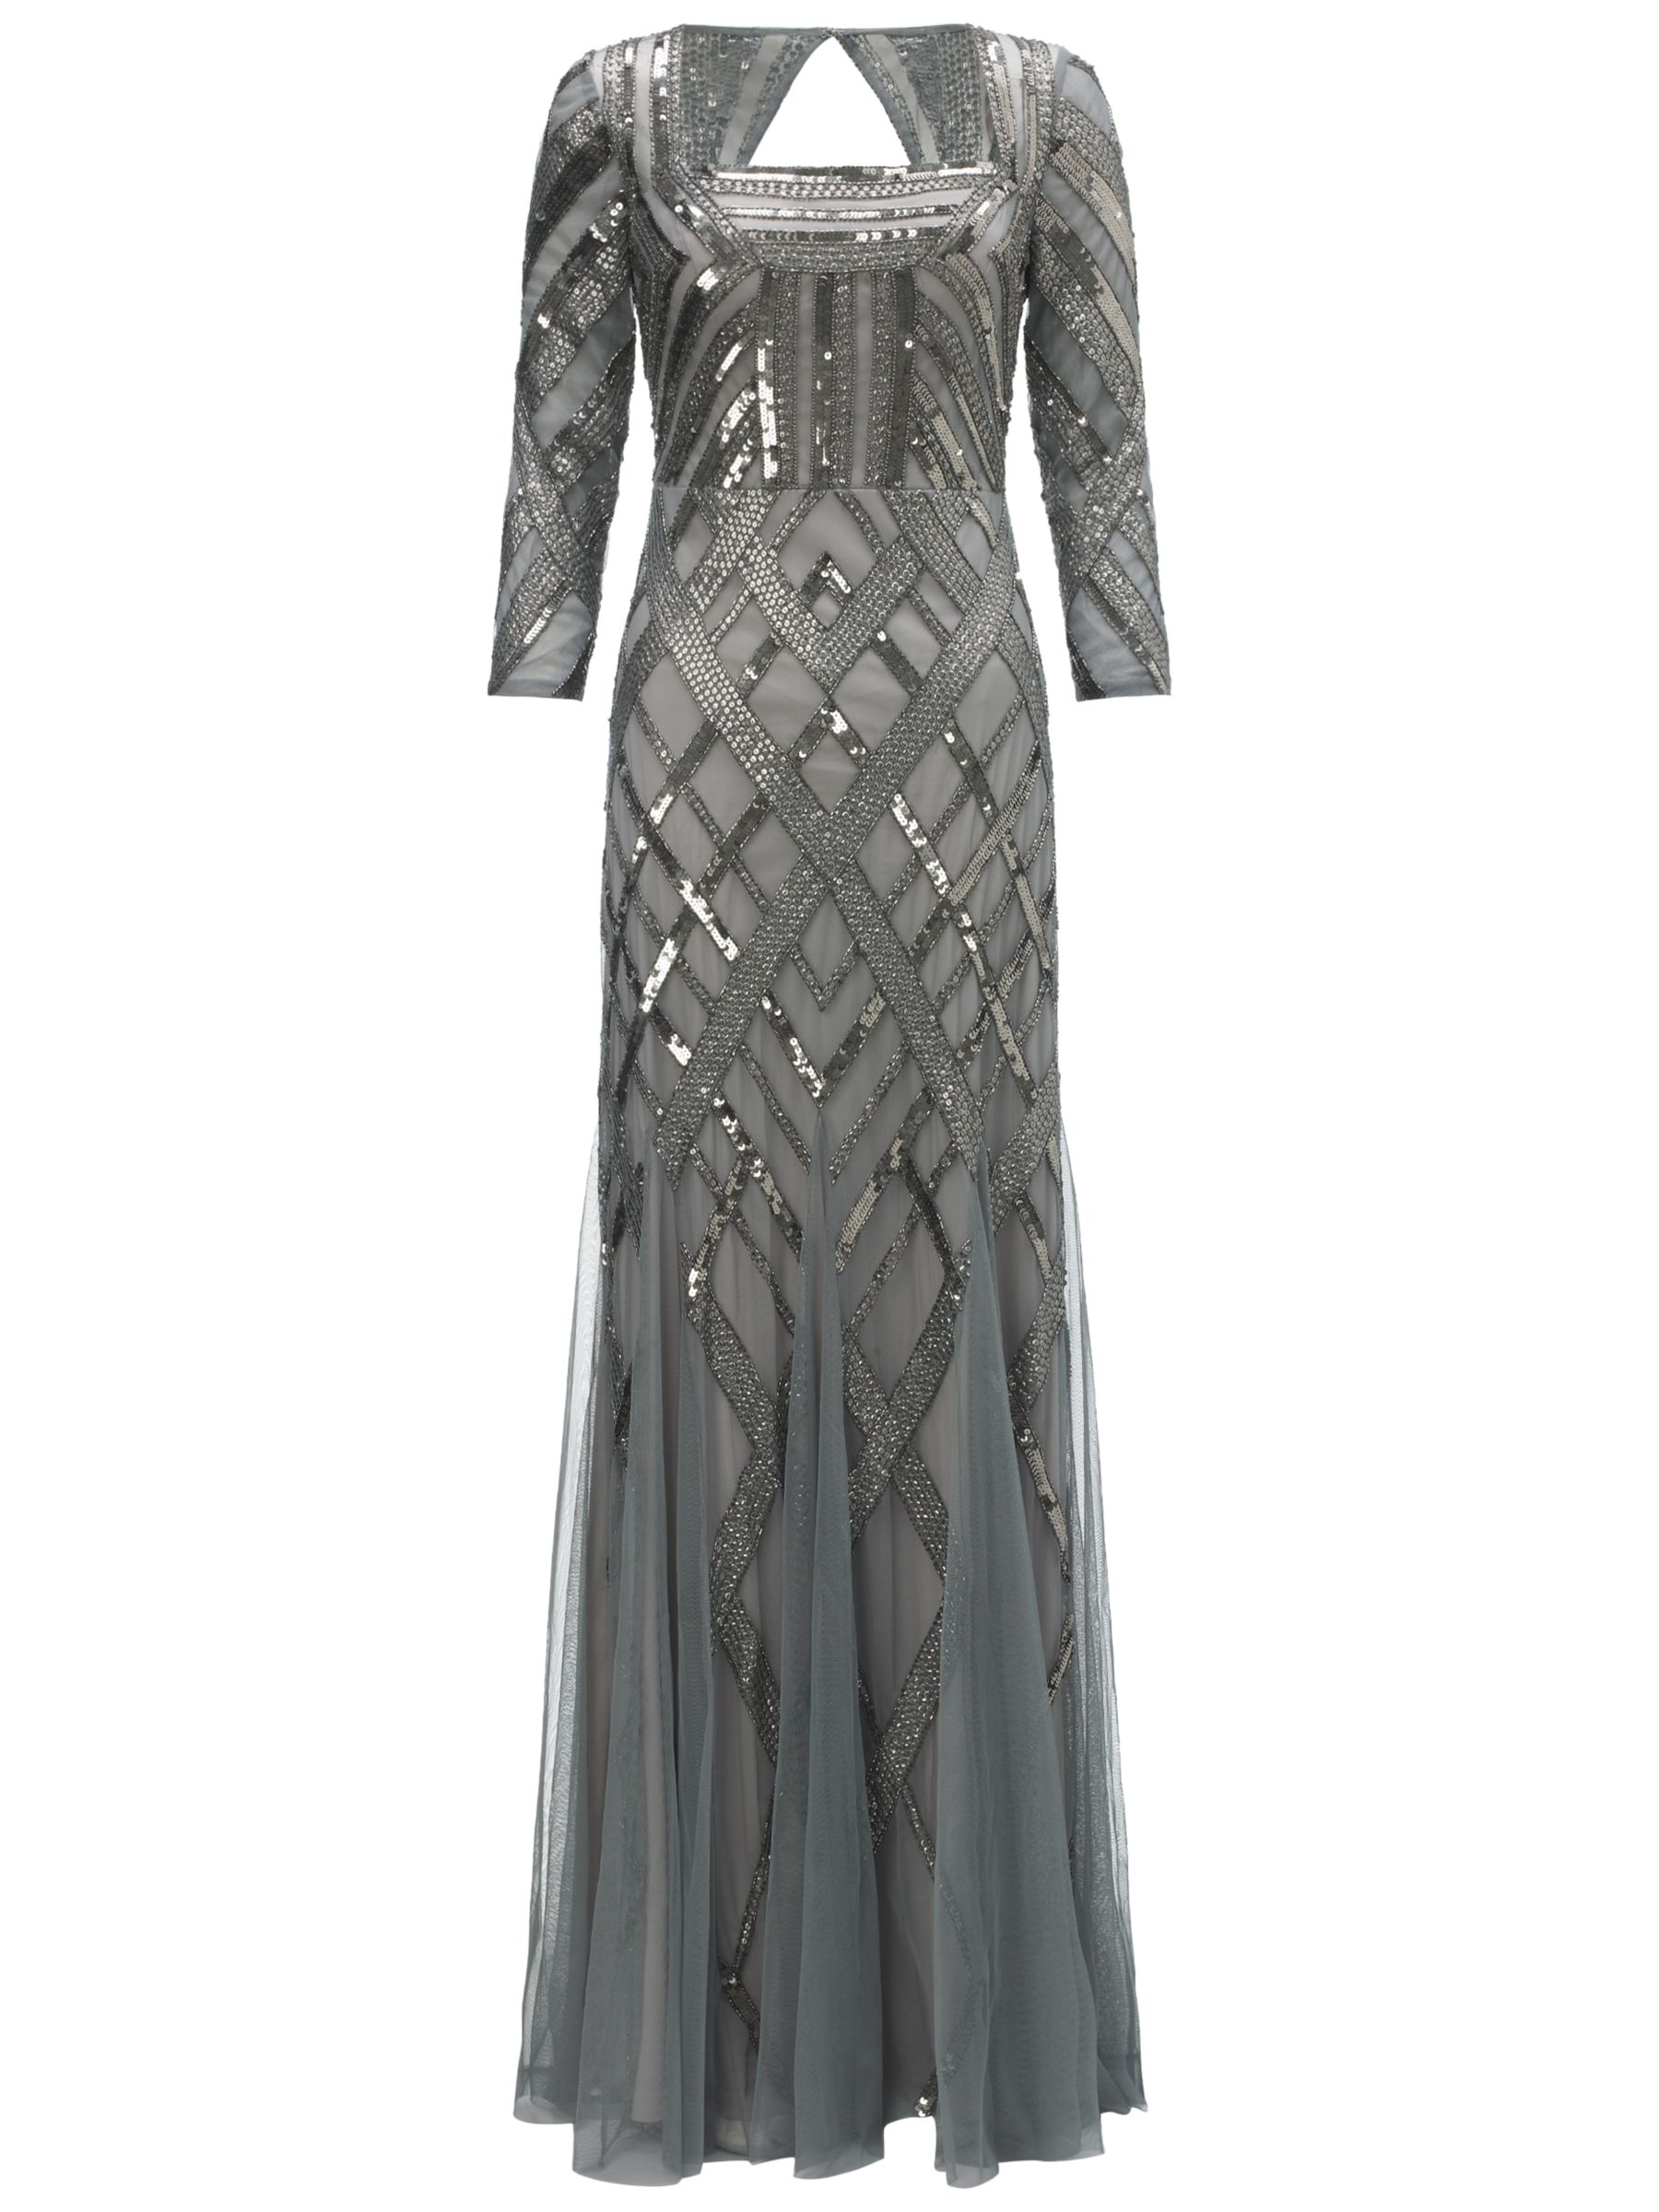 adrianna papell bead art deco dress slate, adrianna, papell, bead, art, deco, dress, slate, adrianna papell, 16|10|12|20|18|14|8, women, eveningwear, special offers, womenswear offers, 30% off selected adrianna papell, plus size, brands a-k, womens dresses, party outfits, evening gowns, gifts, wedding, wedding clothing, adult bridesmaids, 1647245